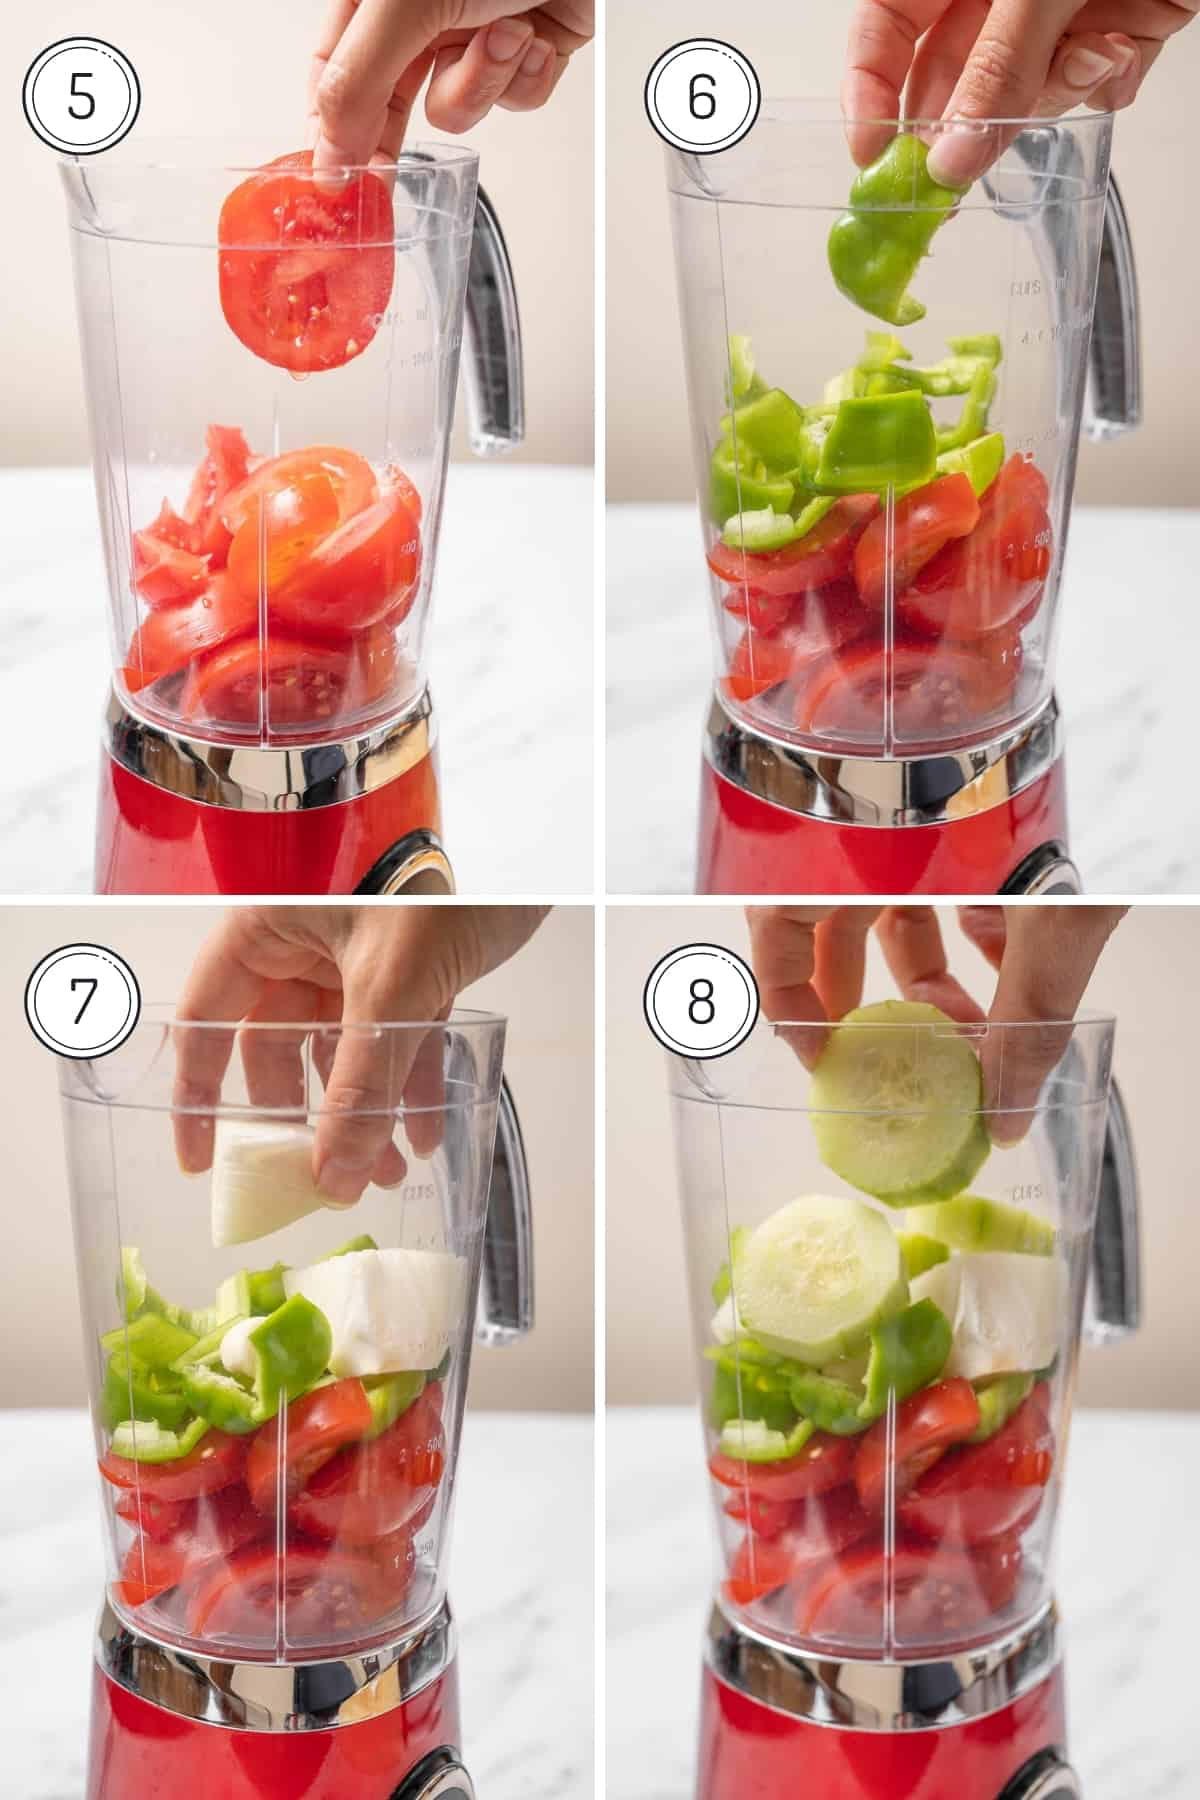 Steps 5-8 of authentic gazpacho recipe in a grid. Adding diced veggies to a blender.